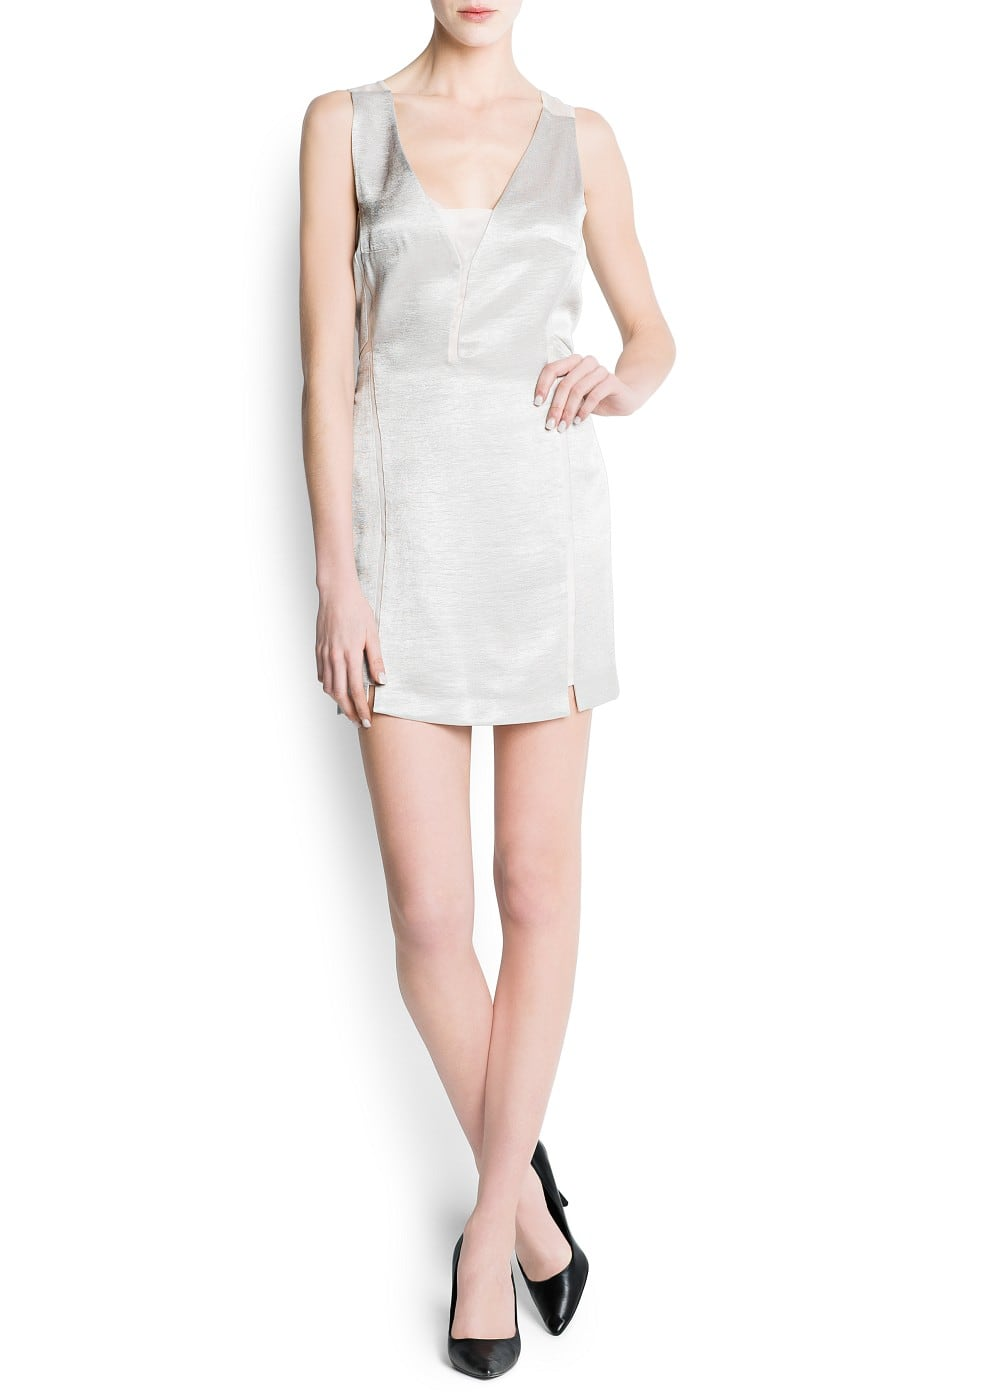 Organza paneled metallic dress